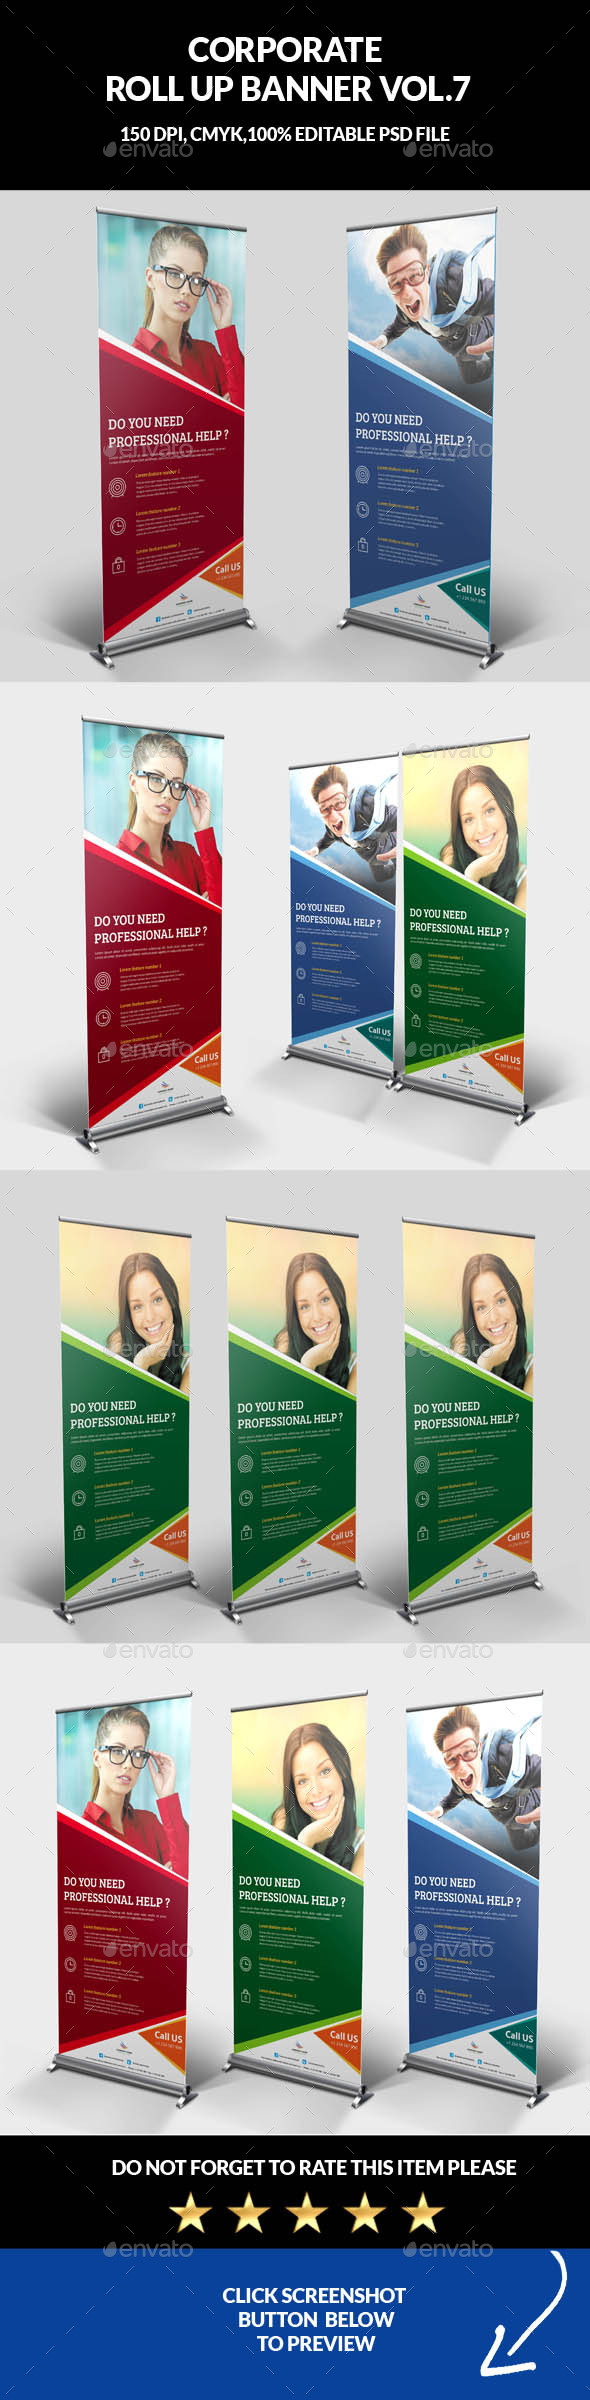 Corporate Business Roll Up Banner Vol.7 - Signage Print Templates